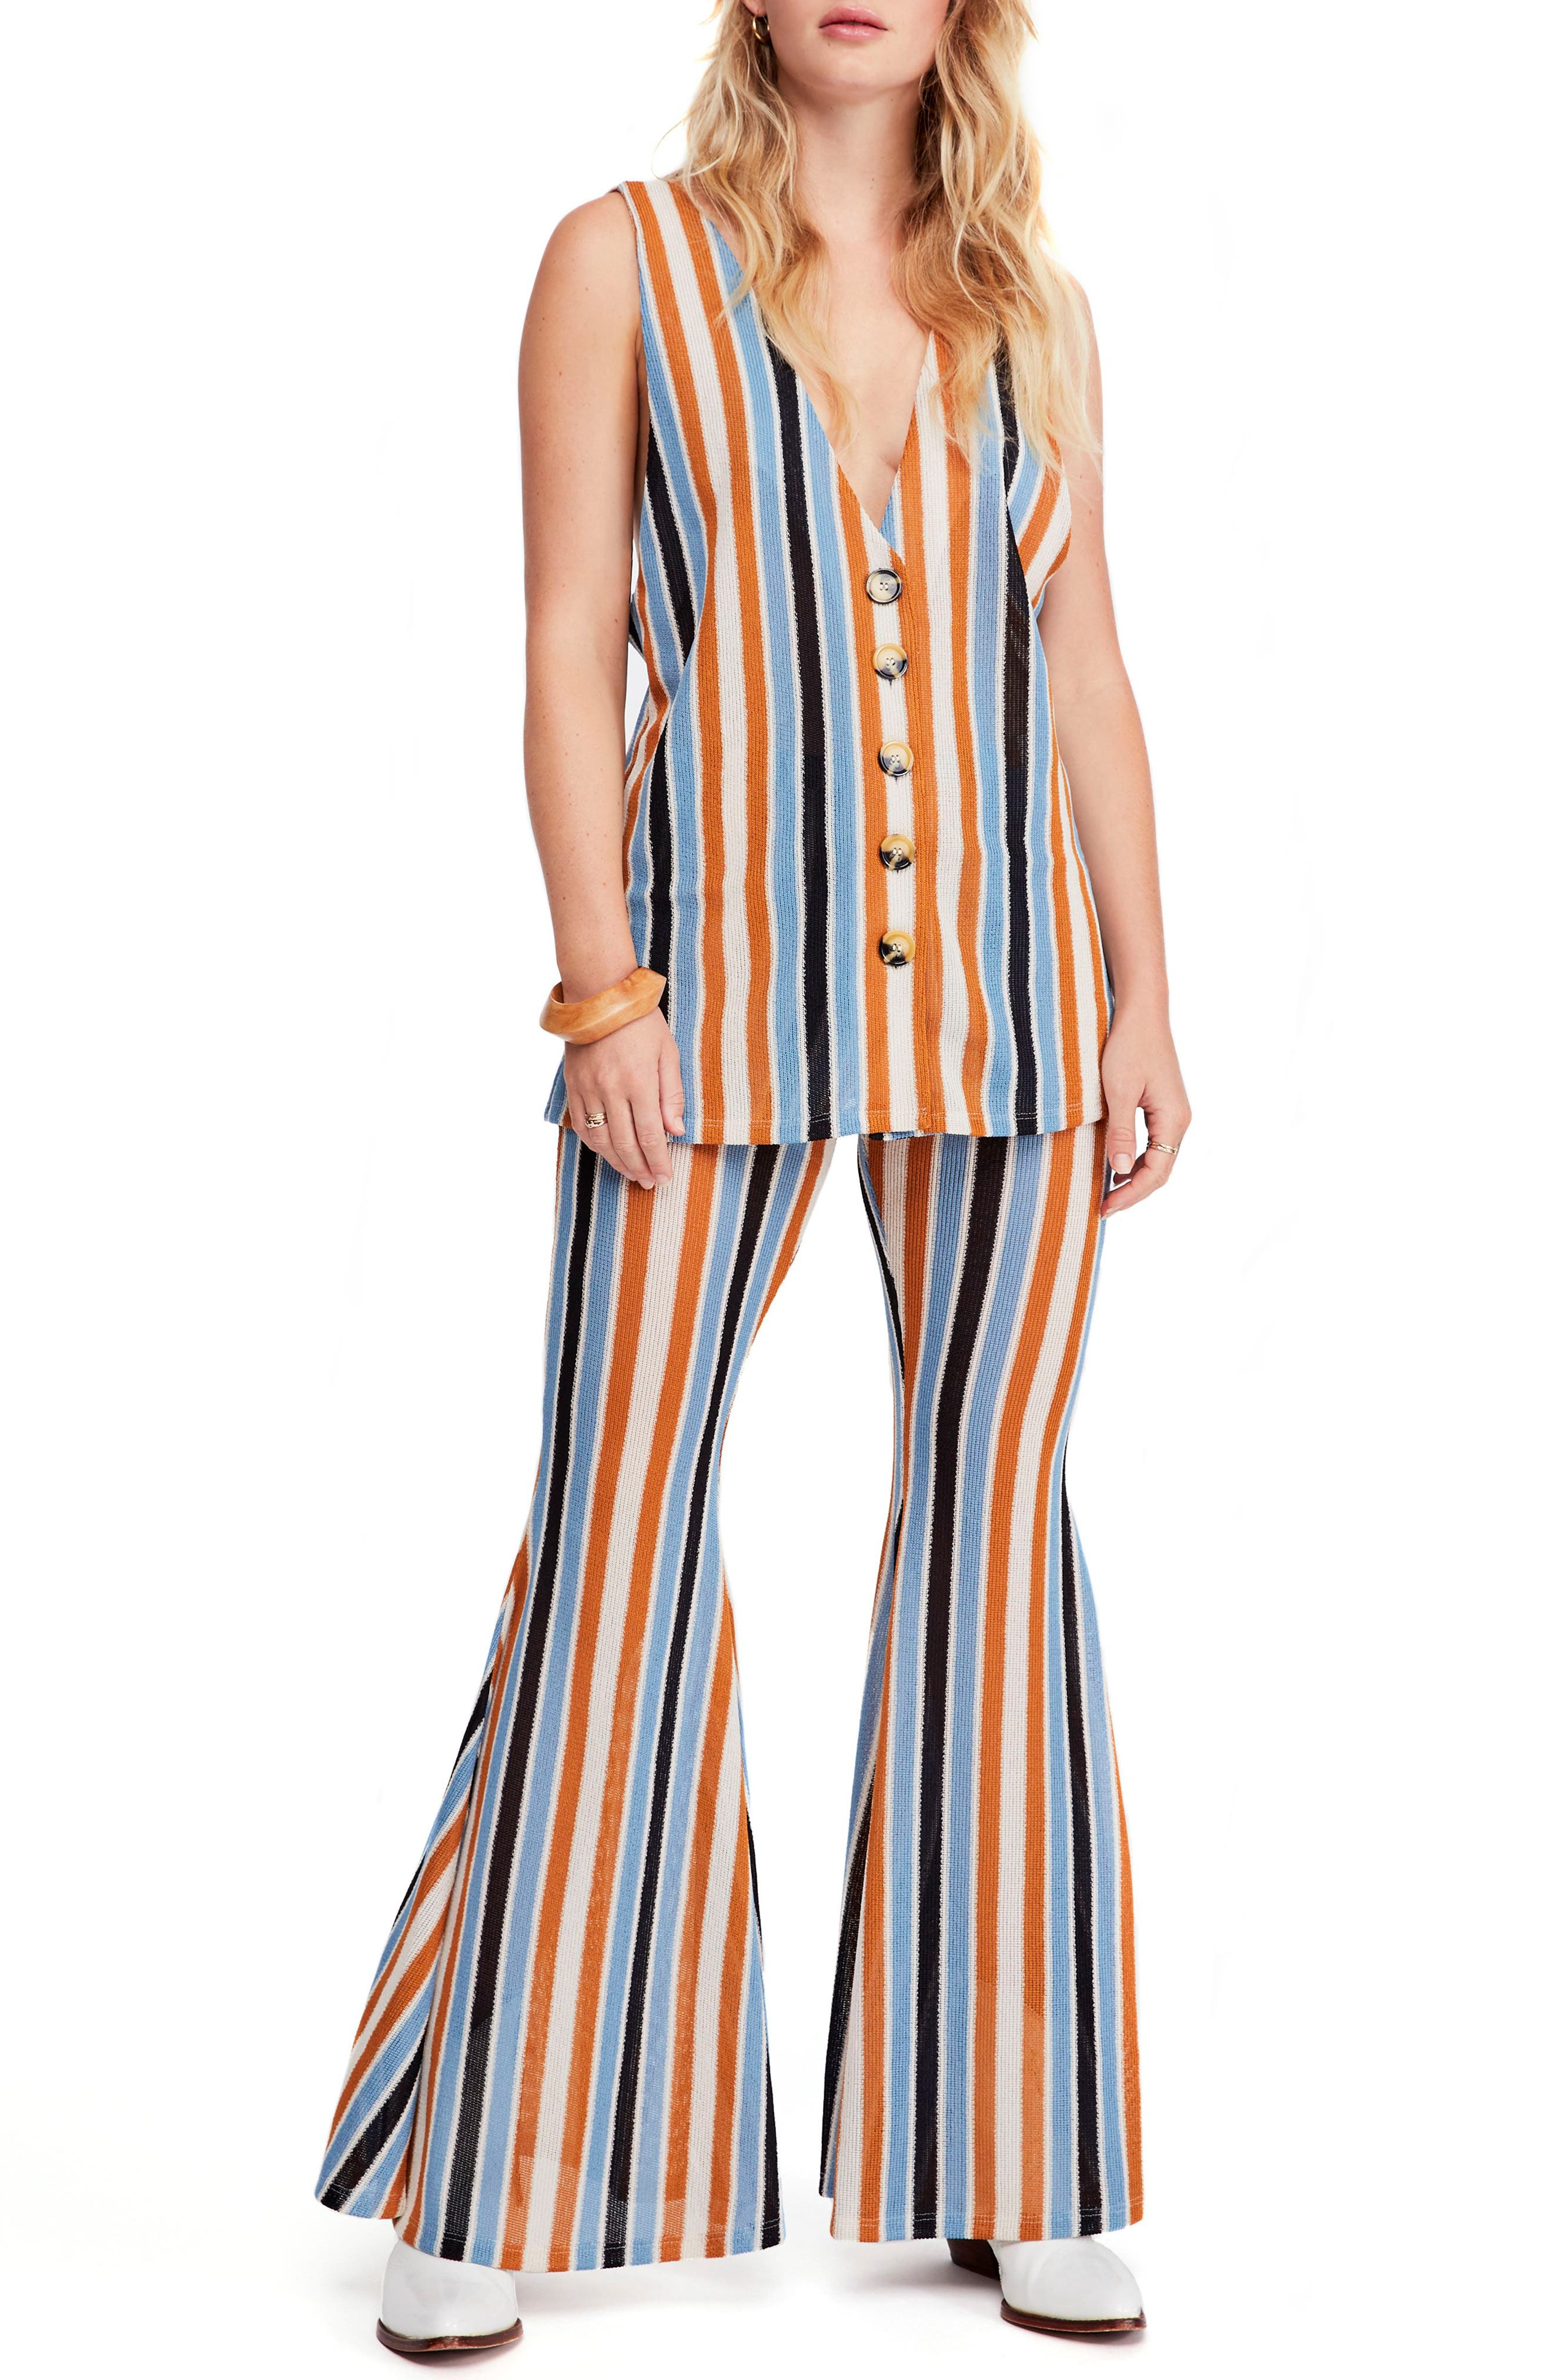 0d270626bdb Free People Women s Rompers   Jumpsuits Clothing